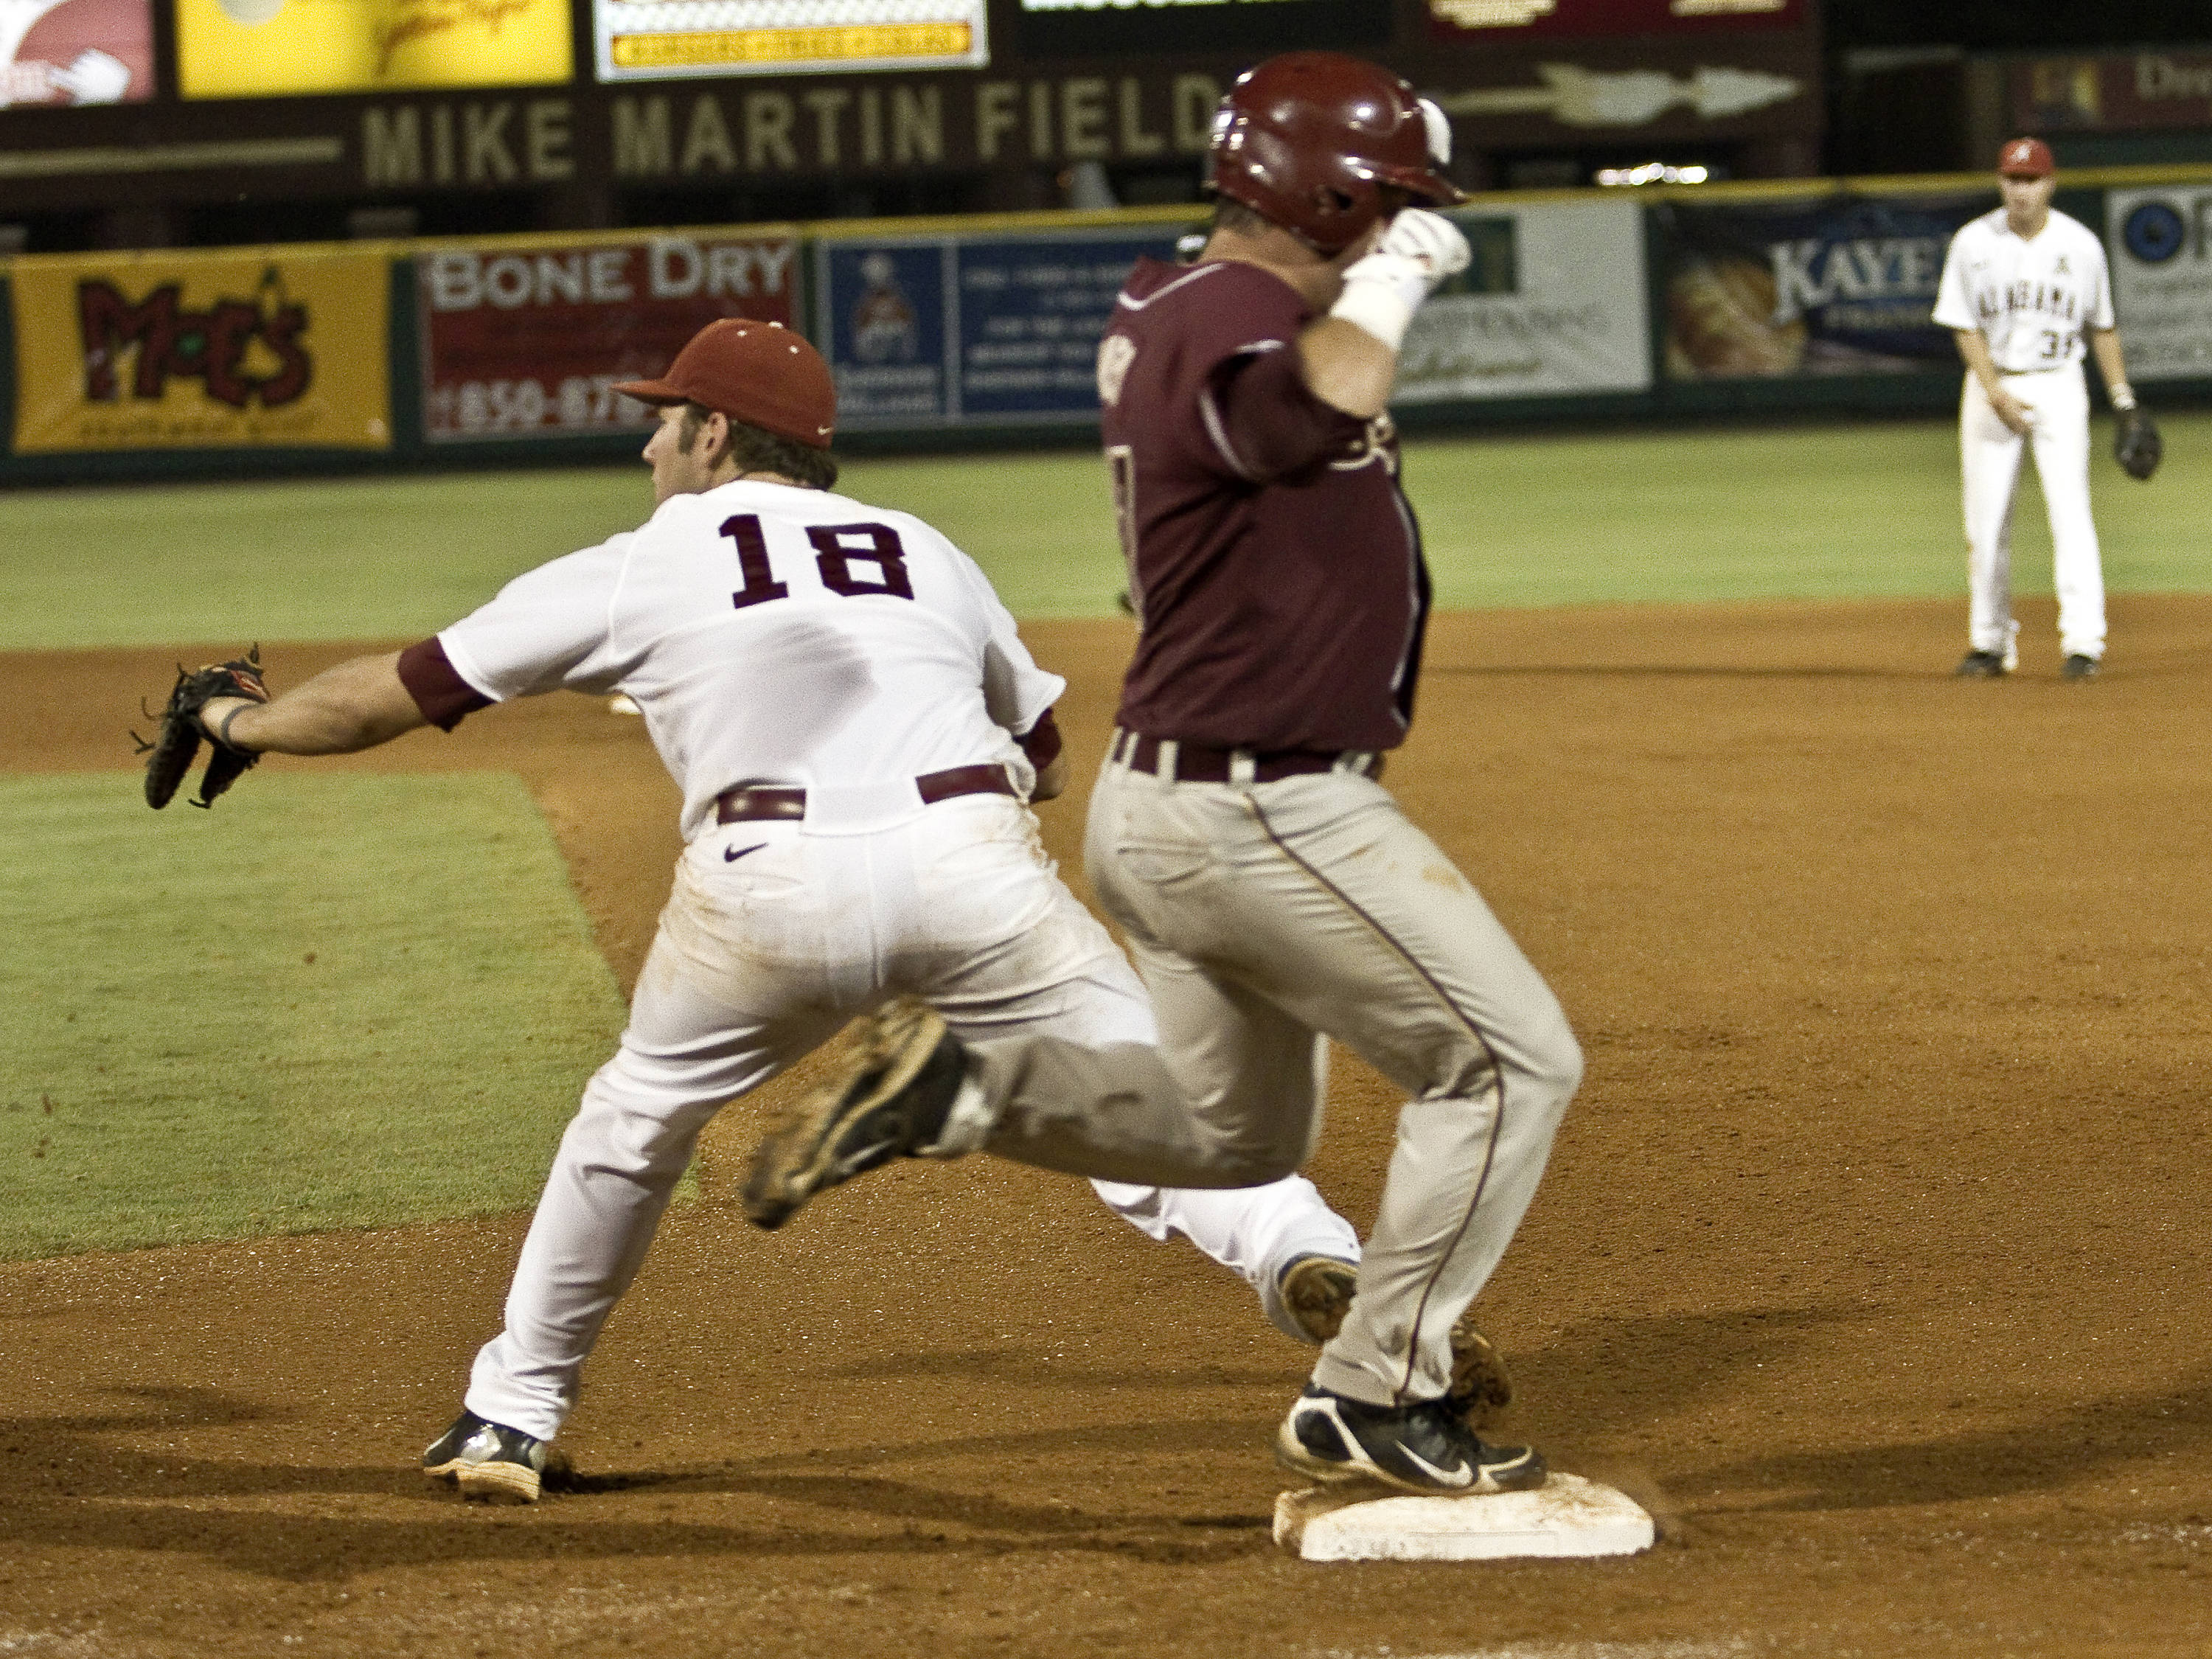 Outfielder Stuart Tapley (27) beating out an infield hit